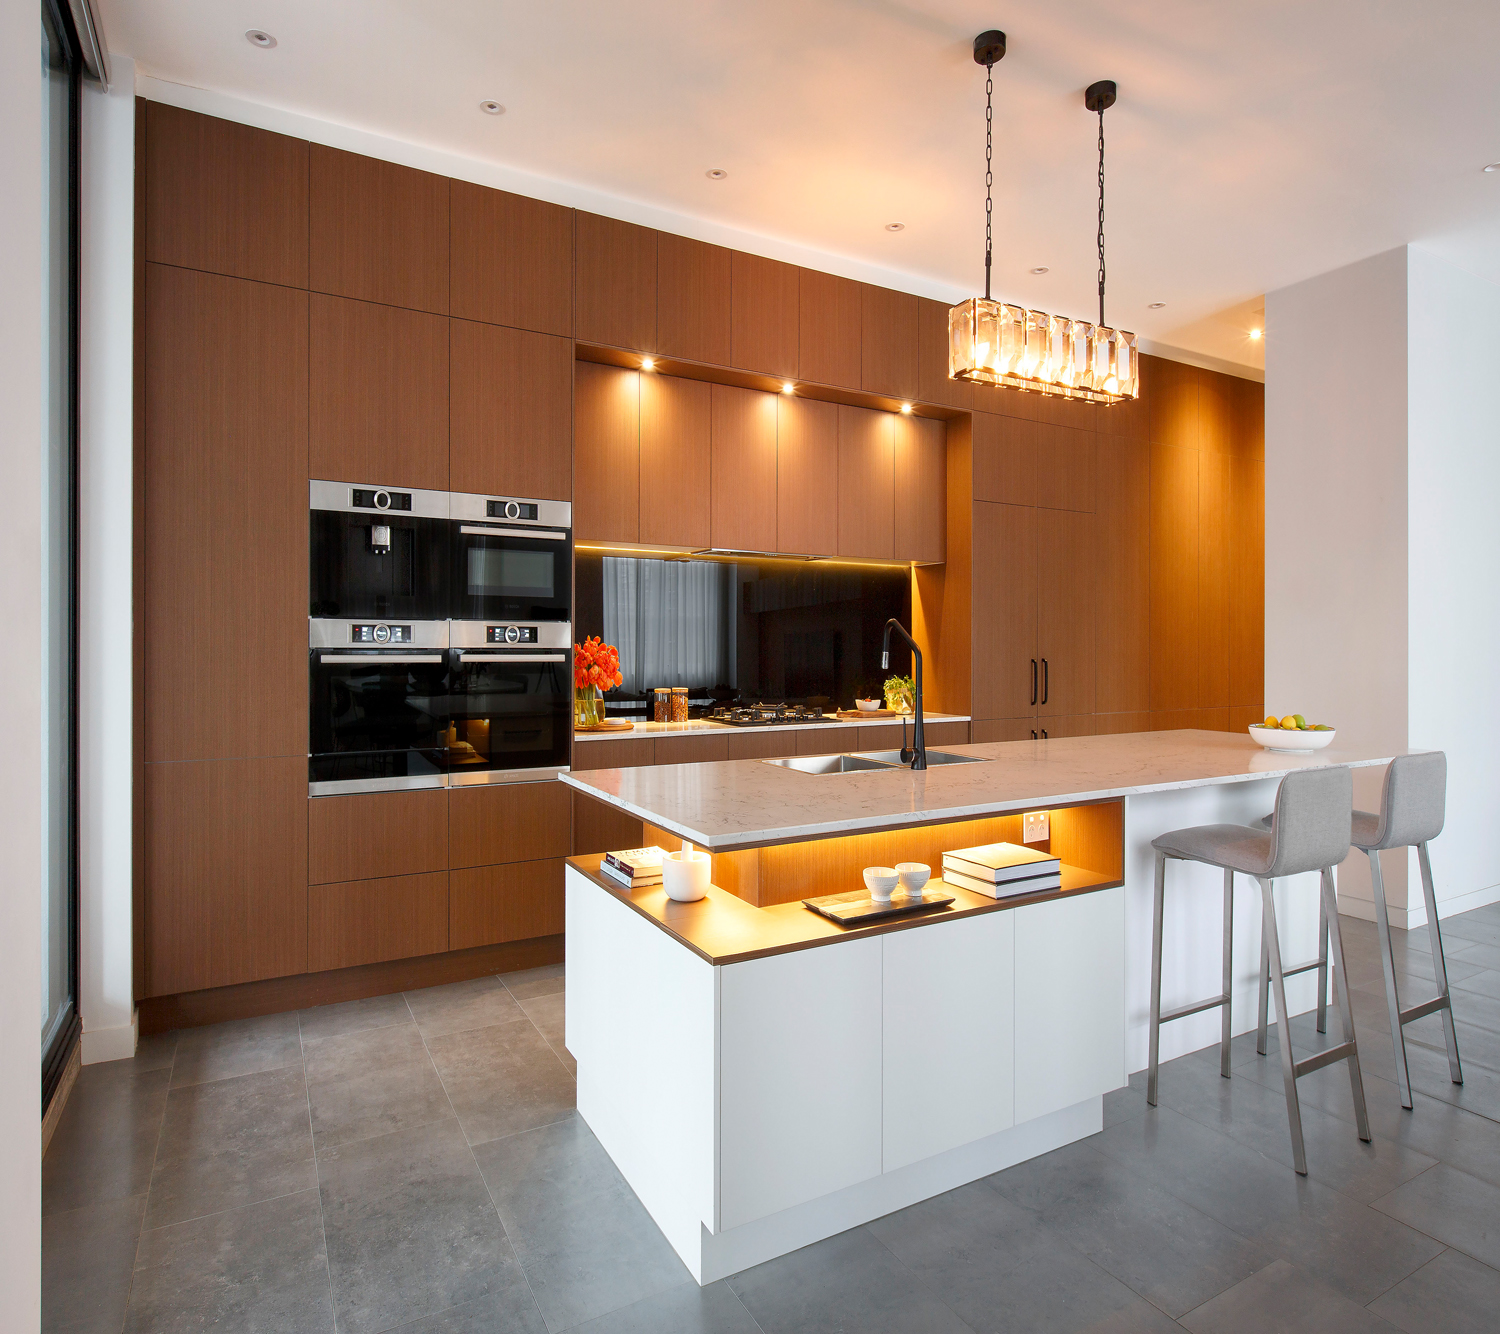 Kitchen Design Melbourne: 10 Ways To Add Value To Your Property By Cherie Barber